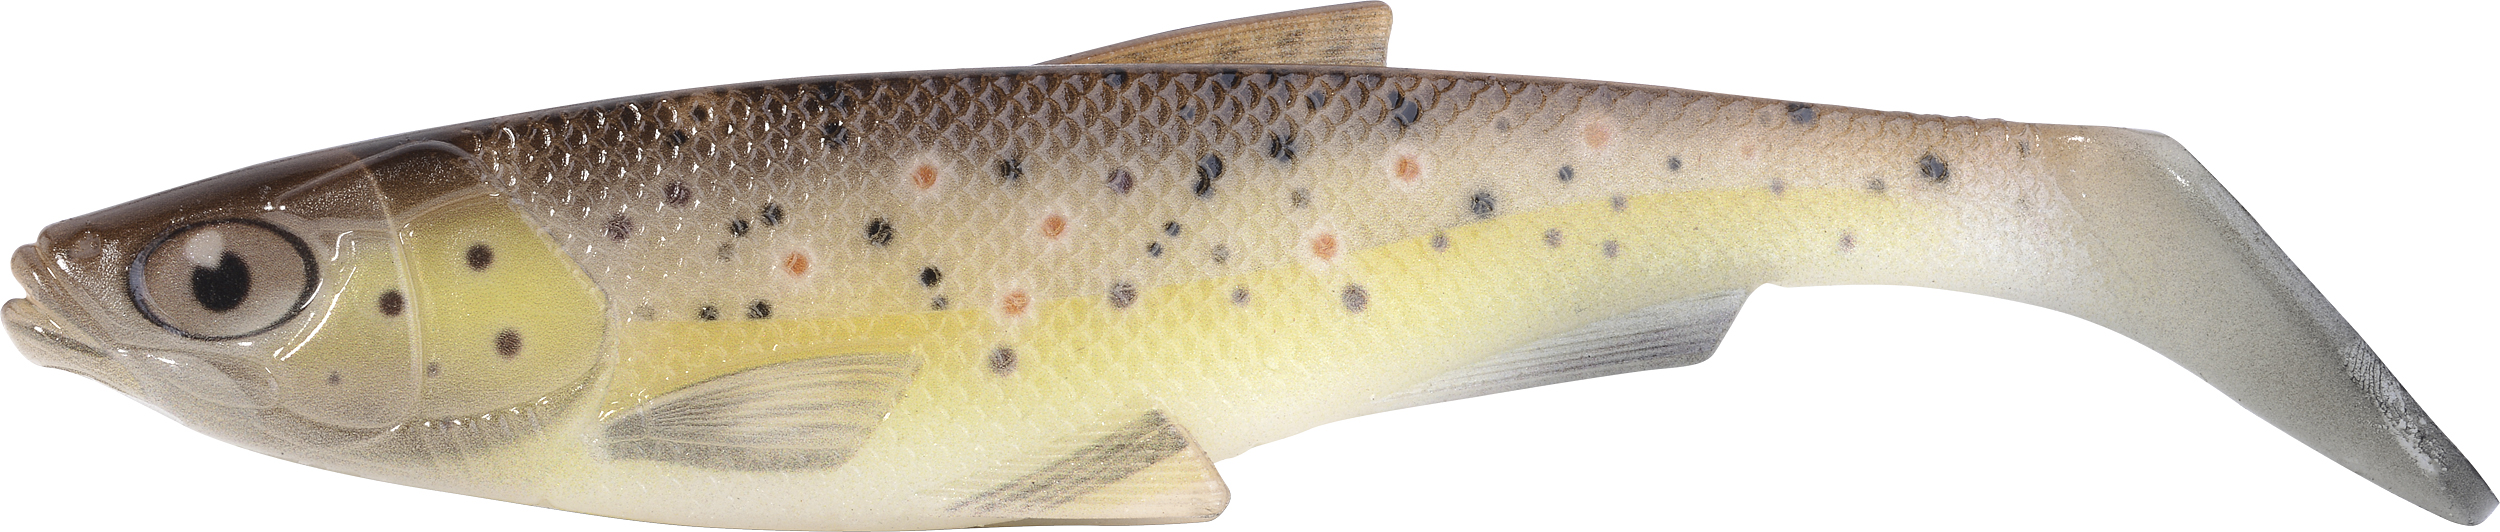 Iron Claw-Gummifisch Belly Boy NG Farbe Brown Trout Länge 15cm-1 - Gerlinger.de